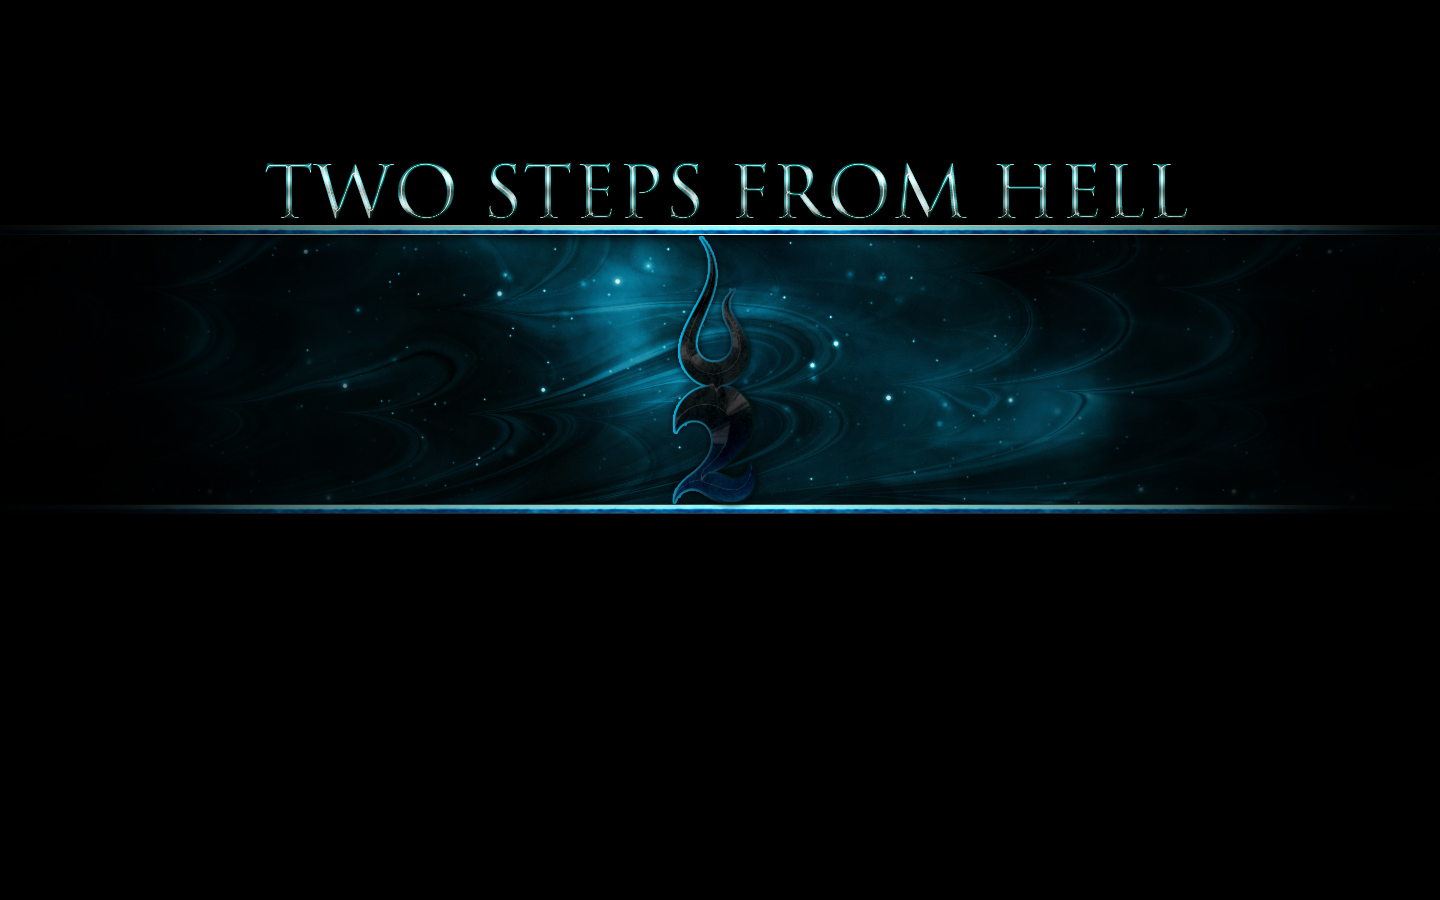 Two Steps From Hell Backgrounds on Wallpapers Vista